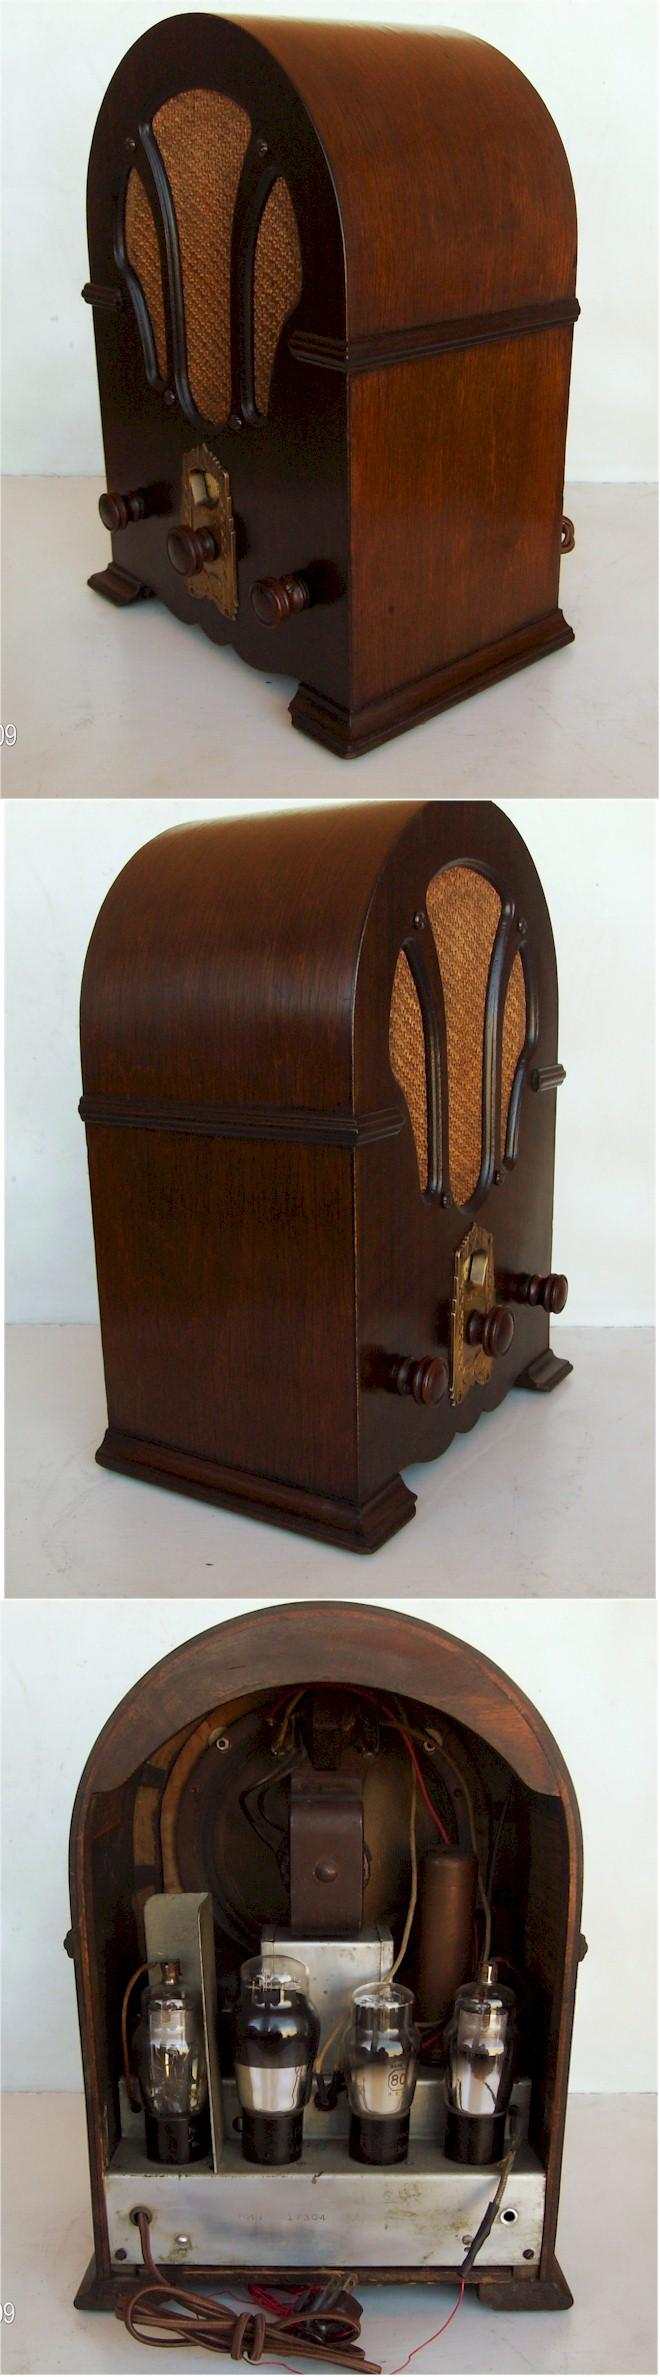 RCA Radioette R5 Cathedral (1931)